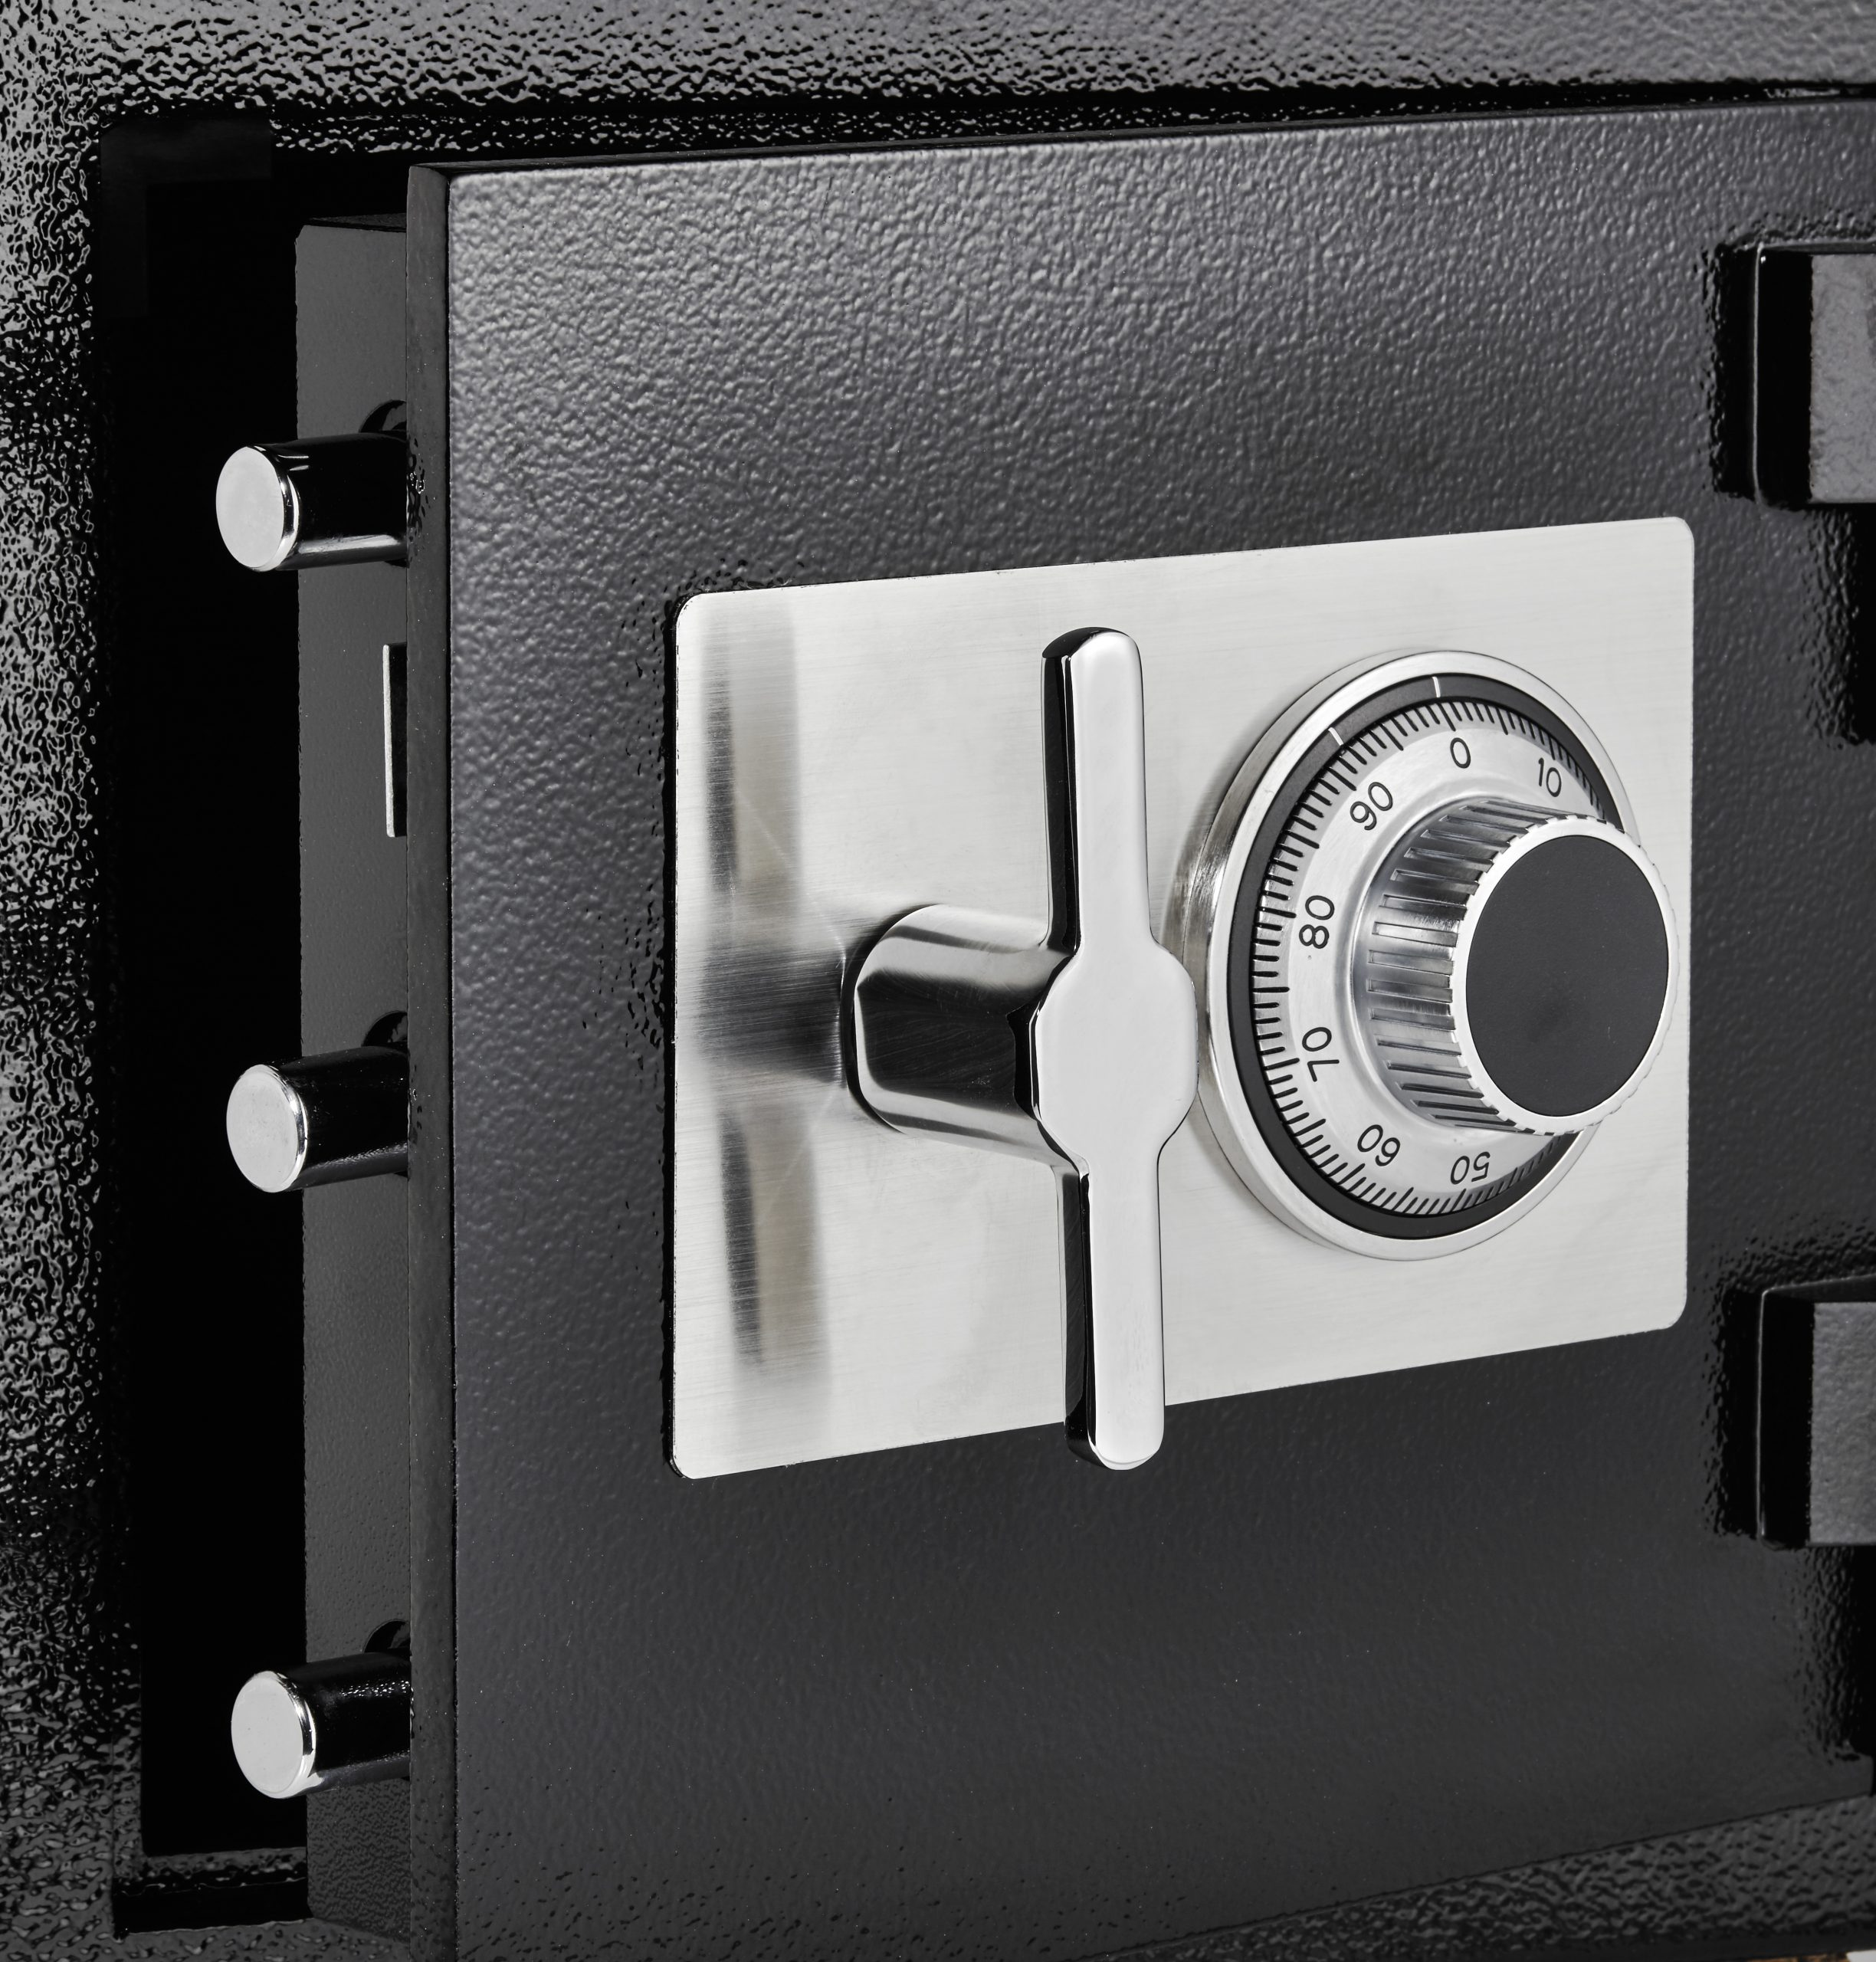 Rotating Drop Slot Combination Lock Office Safe for Cash, Valuables, & Small Parcels